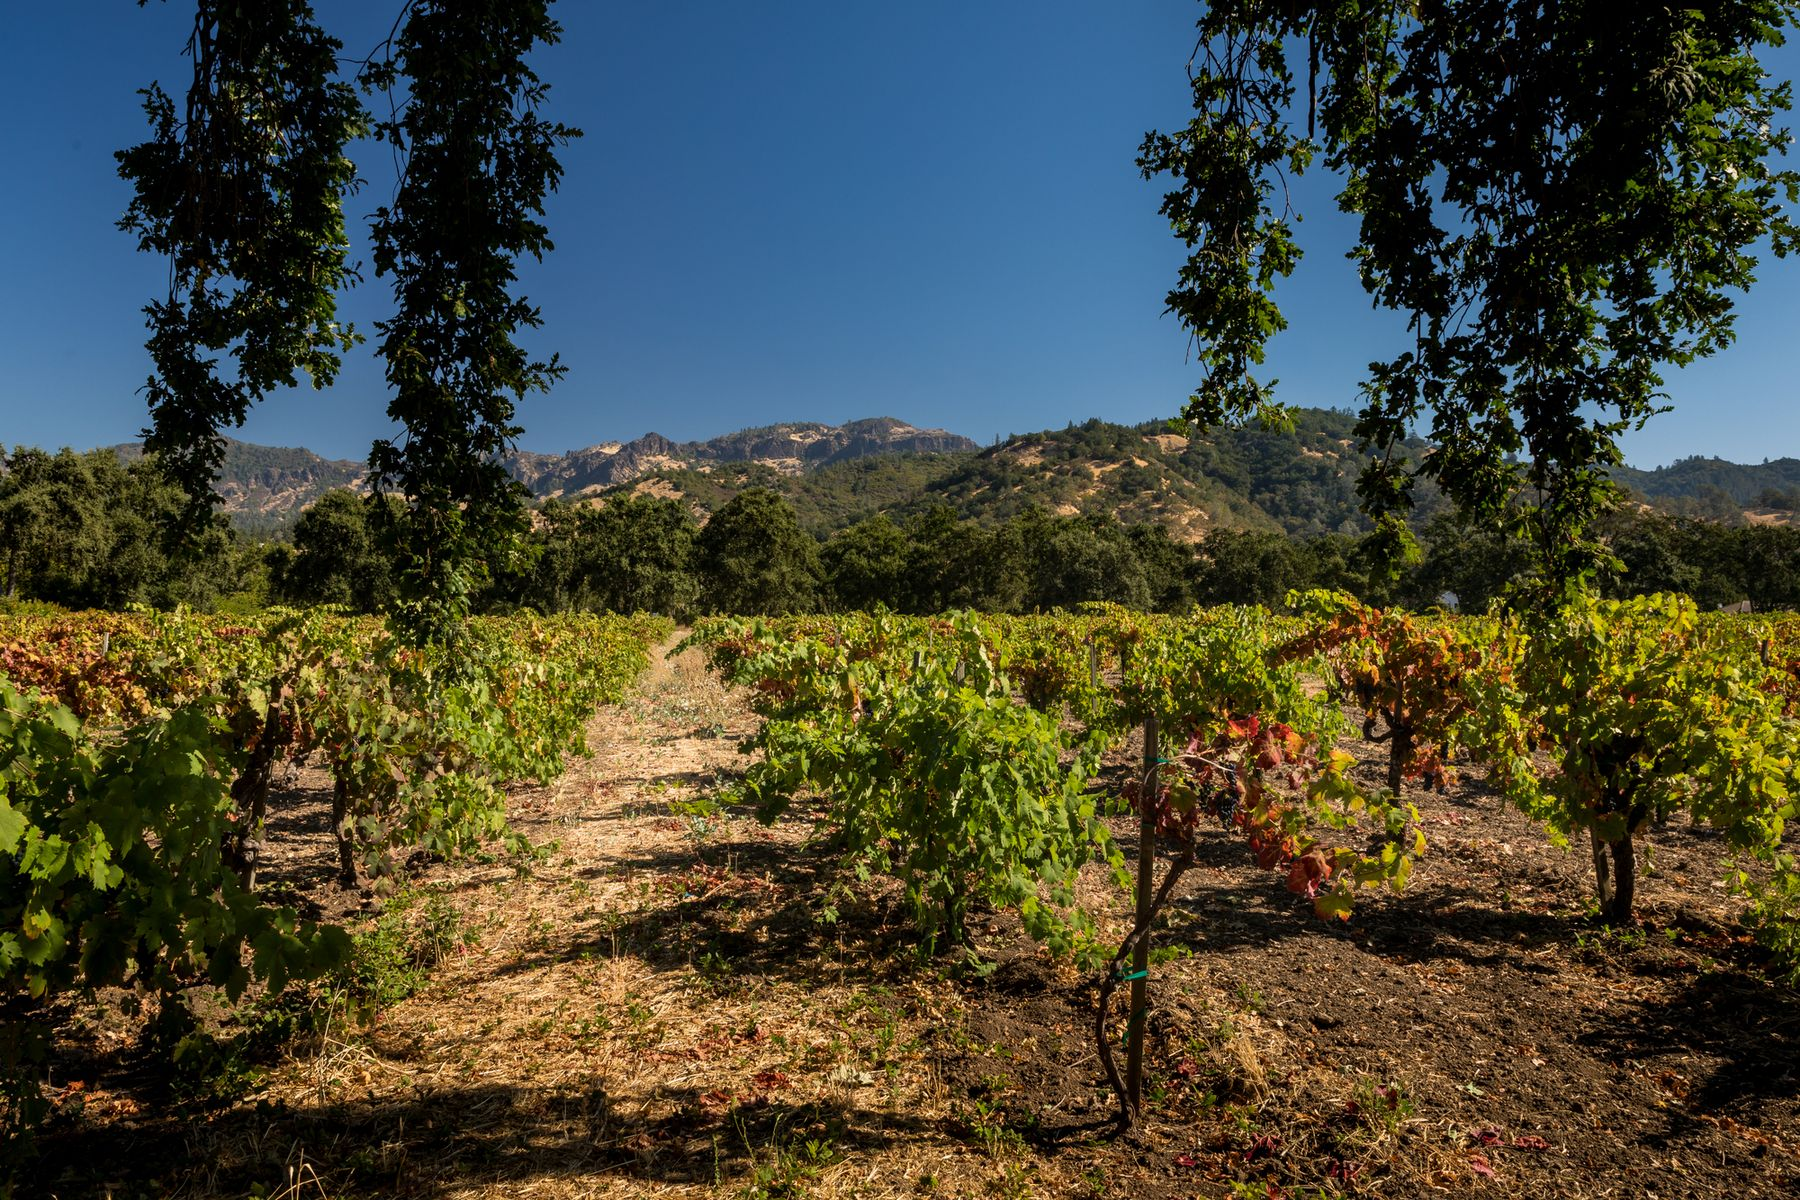 Single Family Homes for Sale at Iconic Vineyard Estate Site 2400 Grant St Calistoga, California 94515 United States